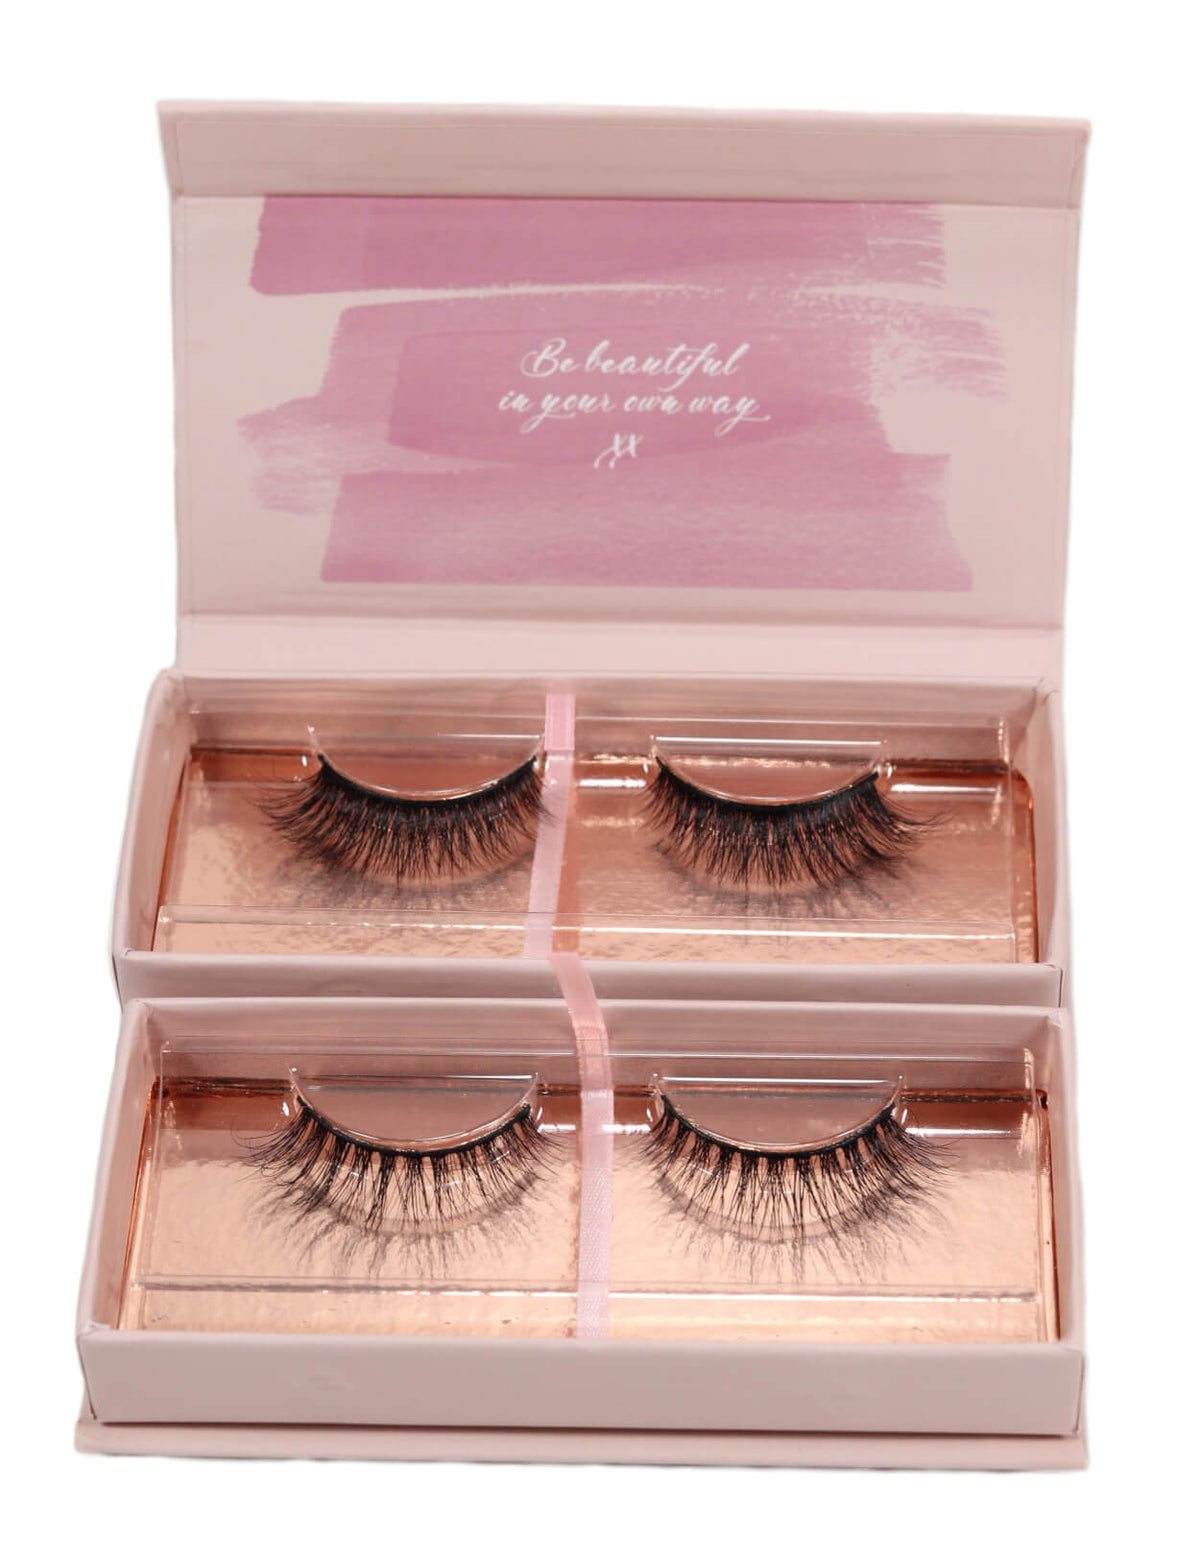 ec1d6bc5251 3D Mink Lashes Collection | Pack of 2 Pairs | Free U.S. Shipping - Évora  Lashes | Évora Lashes